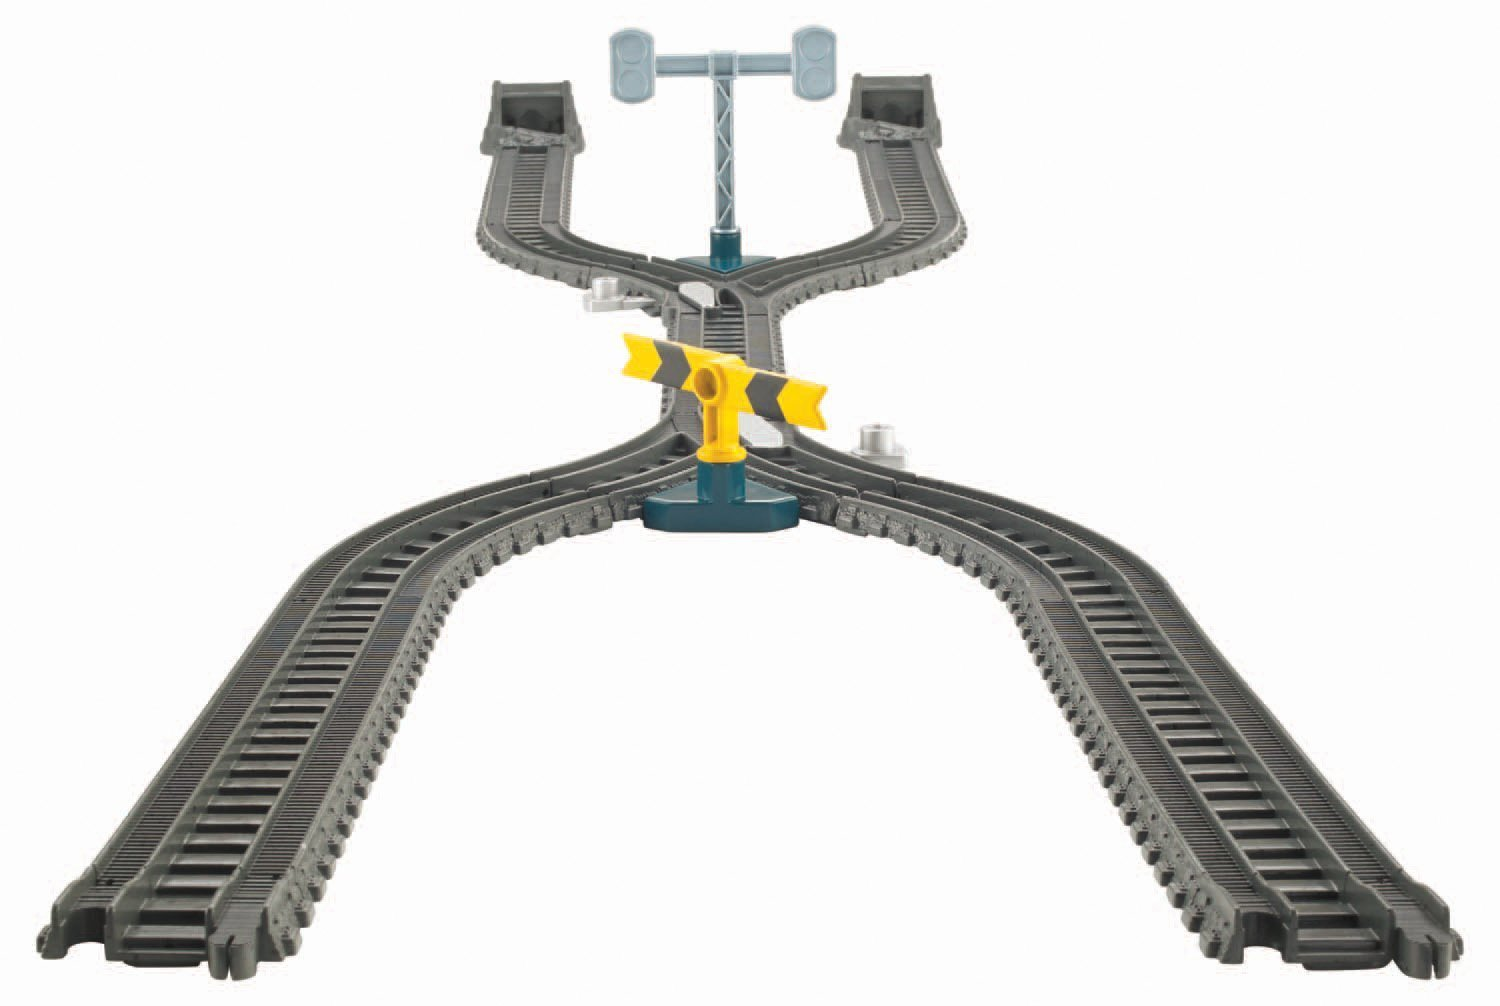 Fisher price thomas and friends trackmaster raceway expansion pack